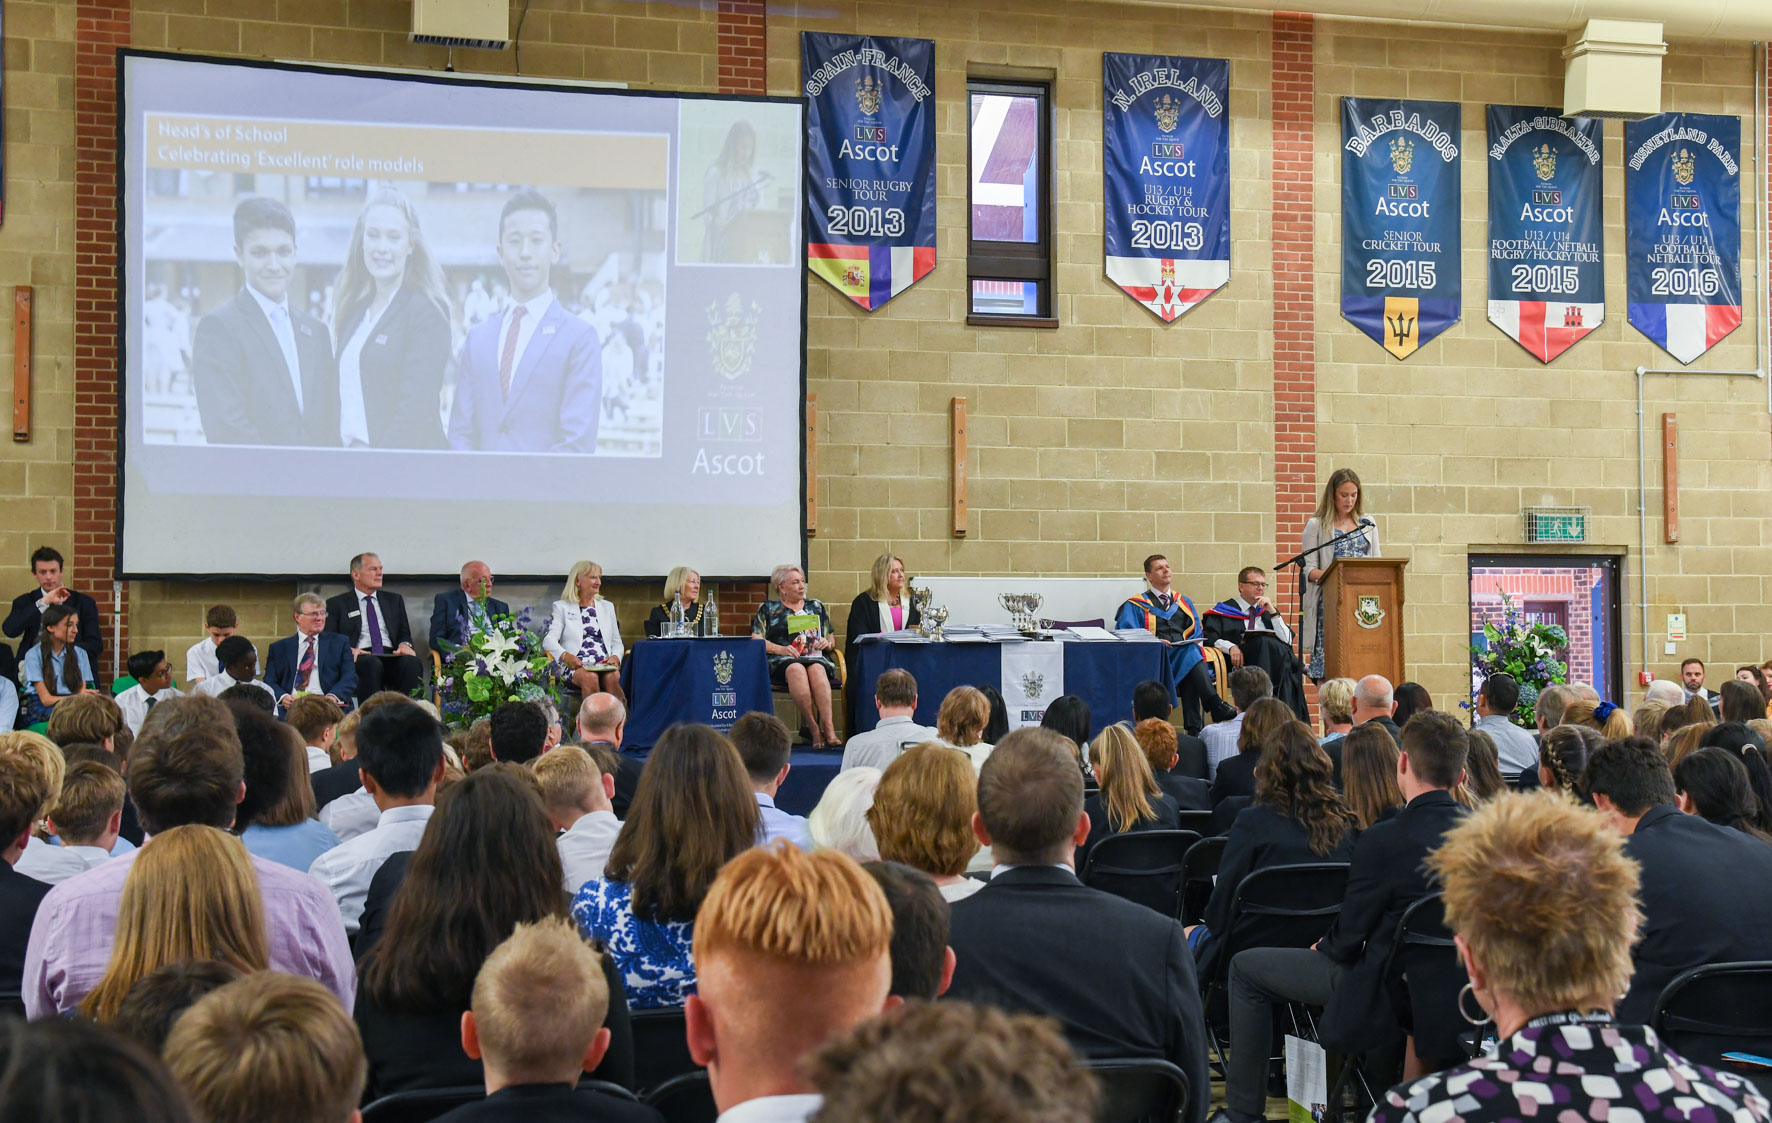 08.07.19. LVS Ascot's outgoing Head Girl Megan Du Toit gives her leaving speech at President's Day